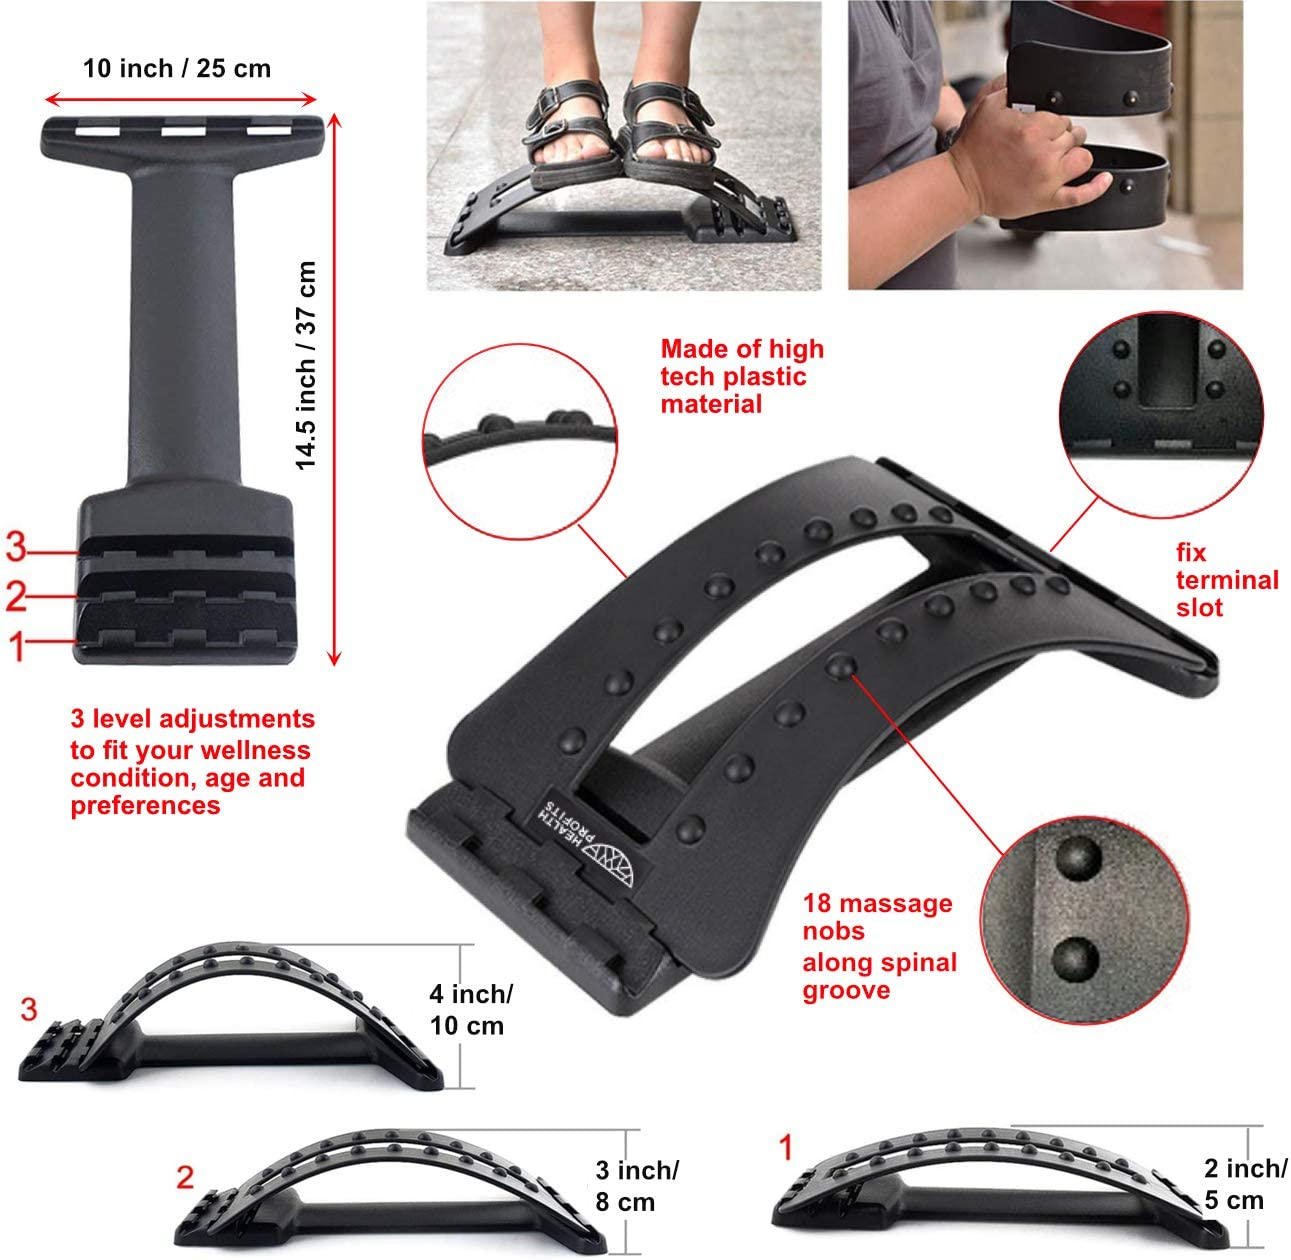 Back Hero Car Seat Decompression Spine Deck Back Stretcher Back Cracking Device Used as Lumbar Stretcher for Lower Back Pain Massager Spine Aligner Traction for Home or add Office Chair